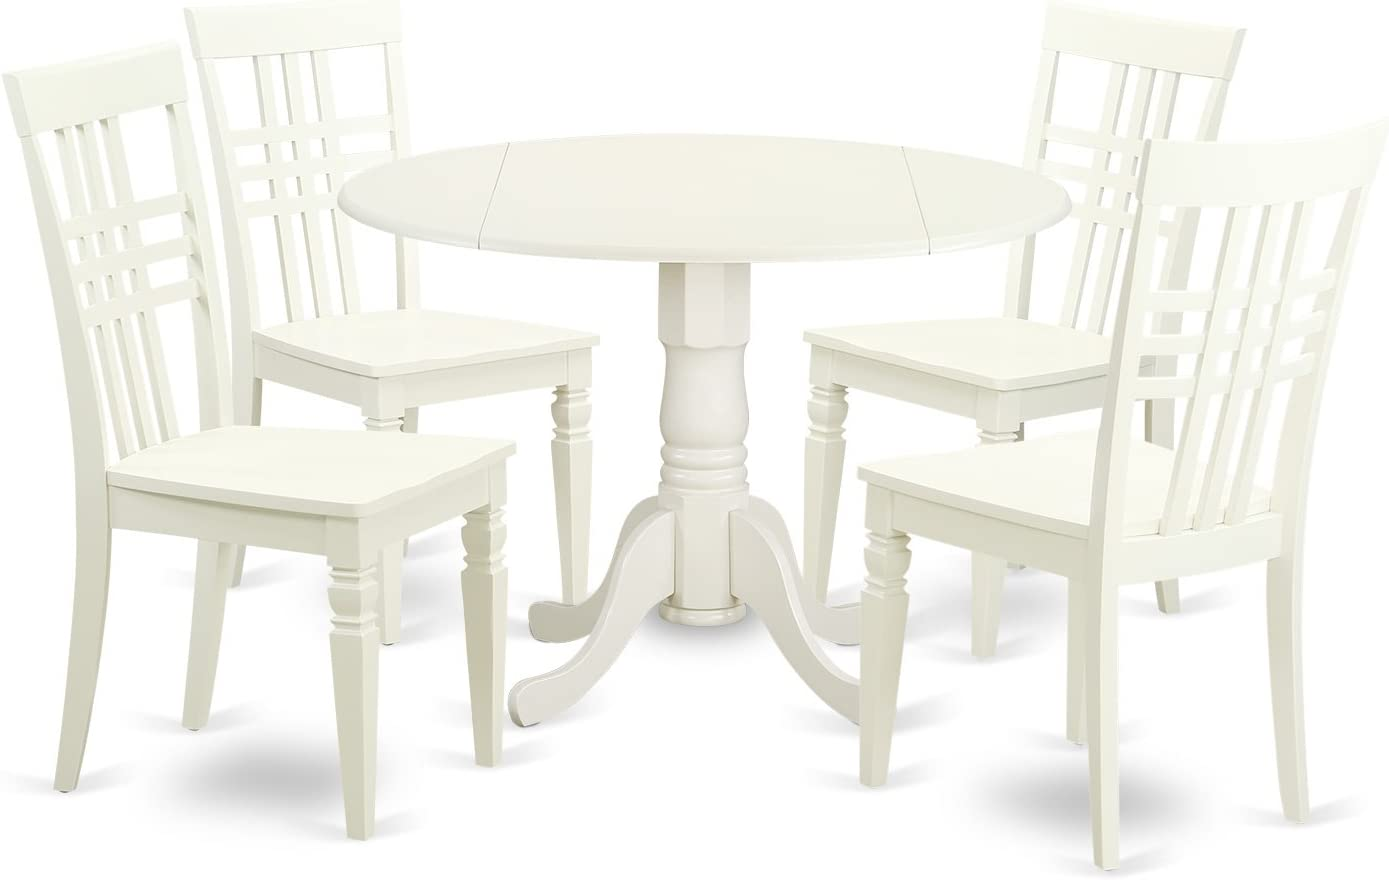 DLLG5-LWH-W 5 PC Small Kitchen Table set with a Table and 4 Dining Chairs in Linen White